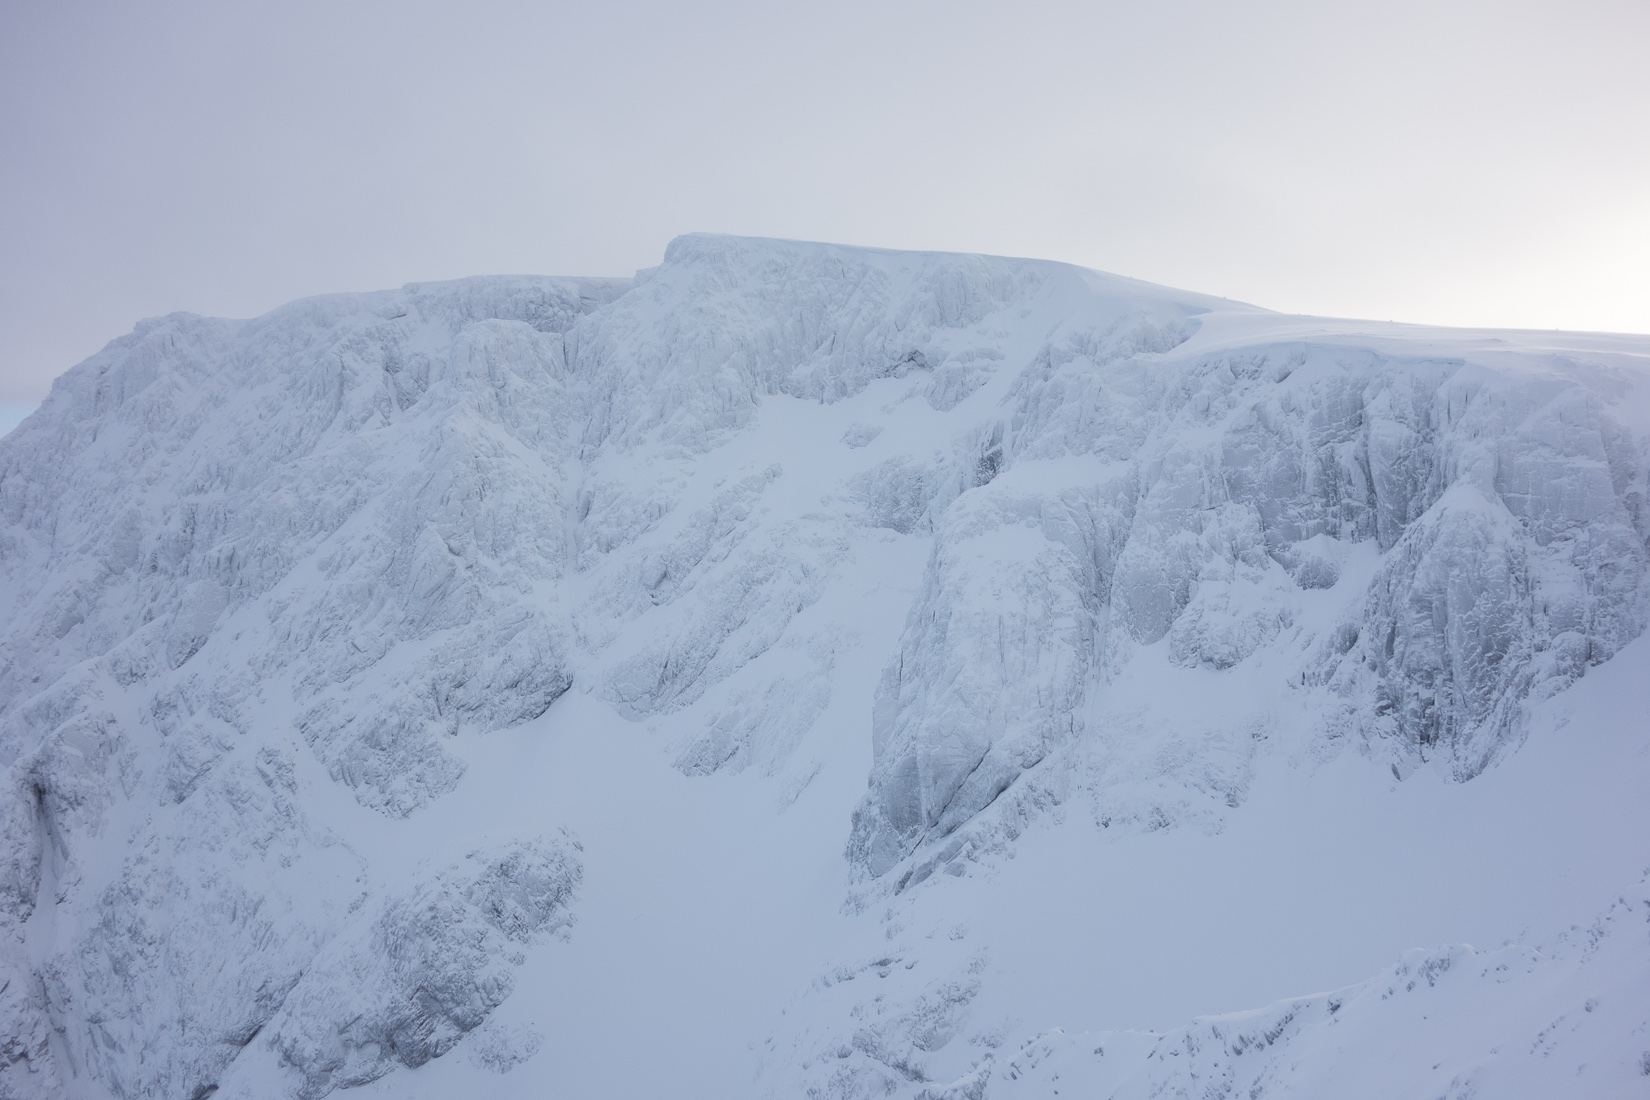 Crags looking white